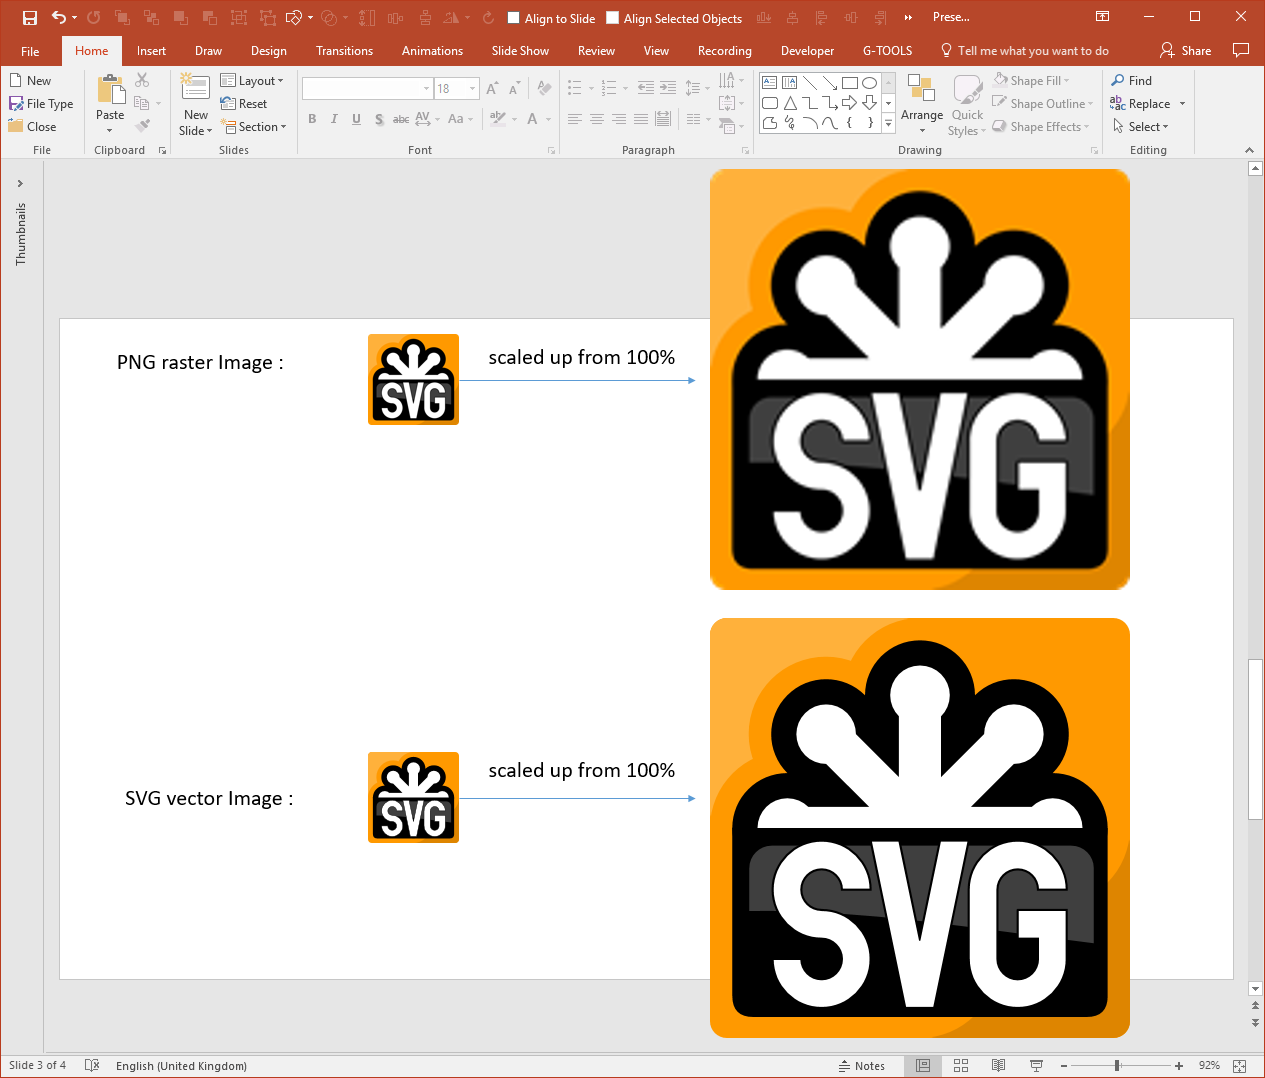 PowerPoint PNG SVG Comparison